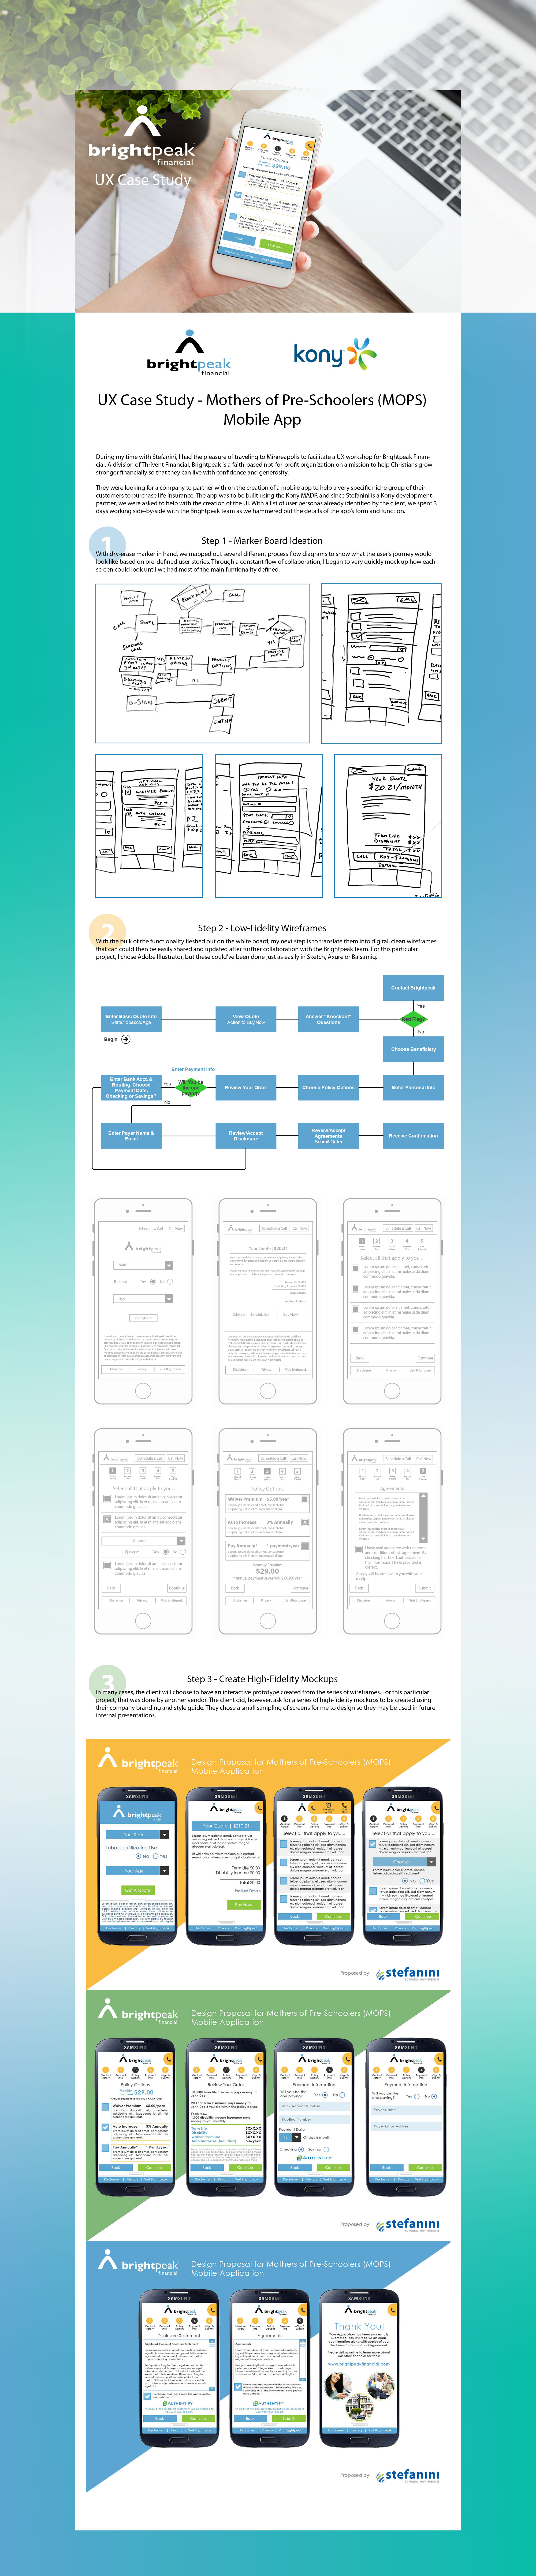 Brightpeak Financial - UX Workflow - Mobile App Design